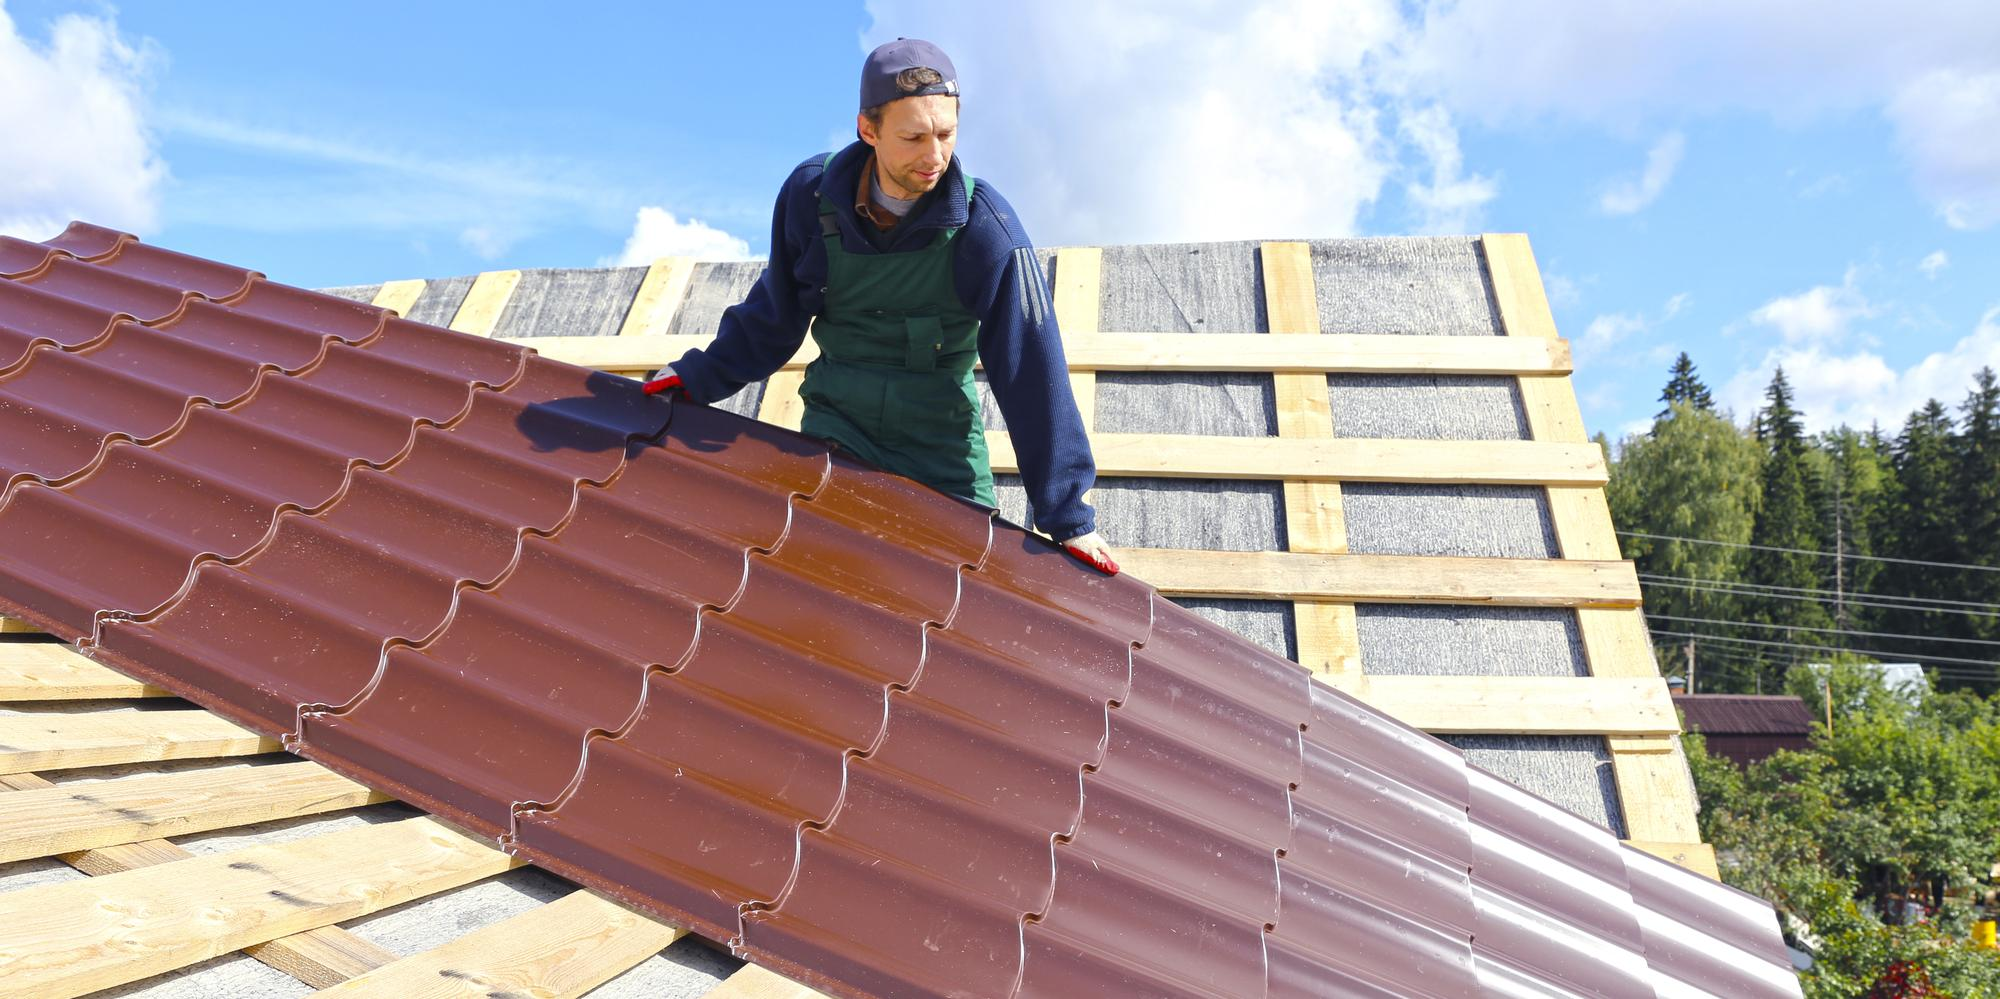 Roofing Materials and Base Costs